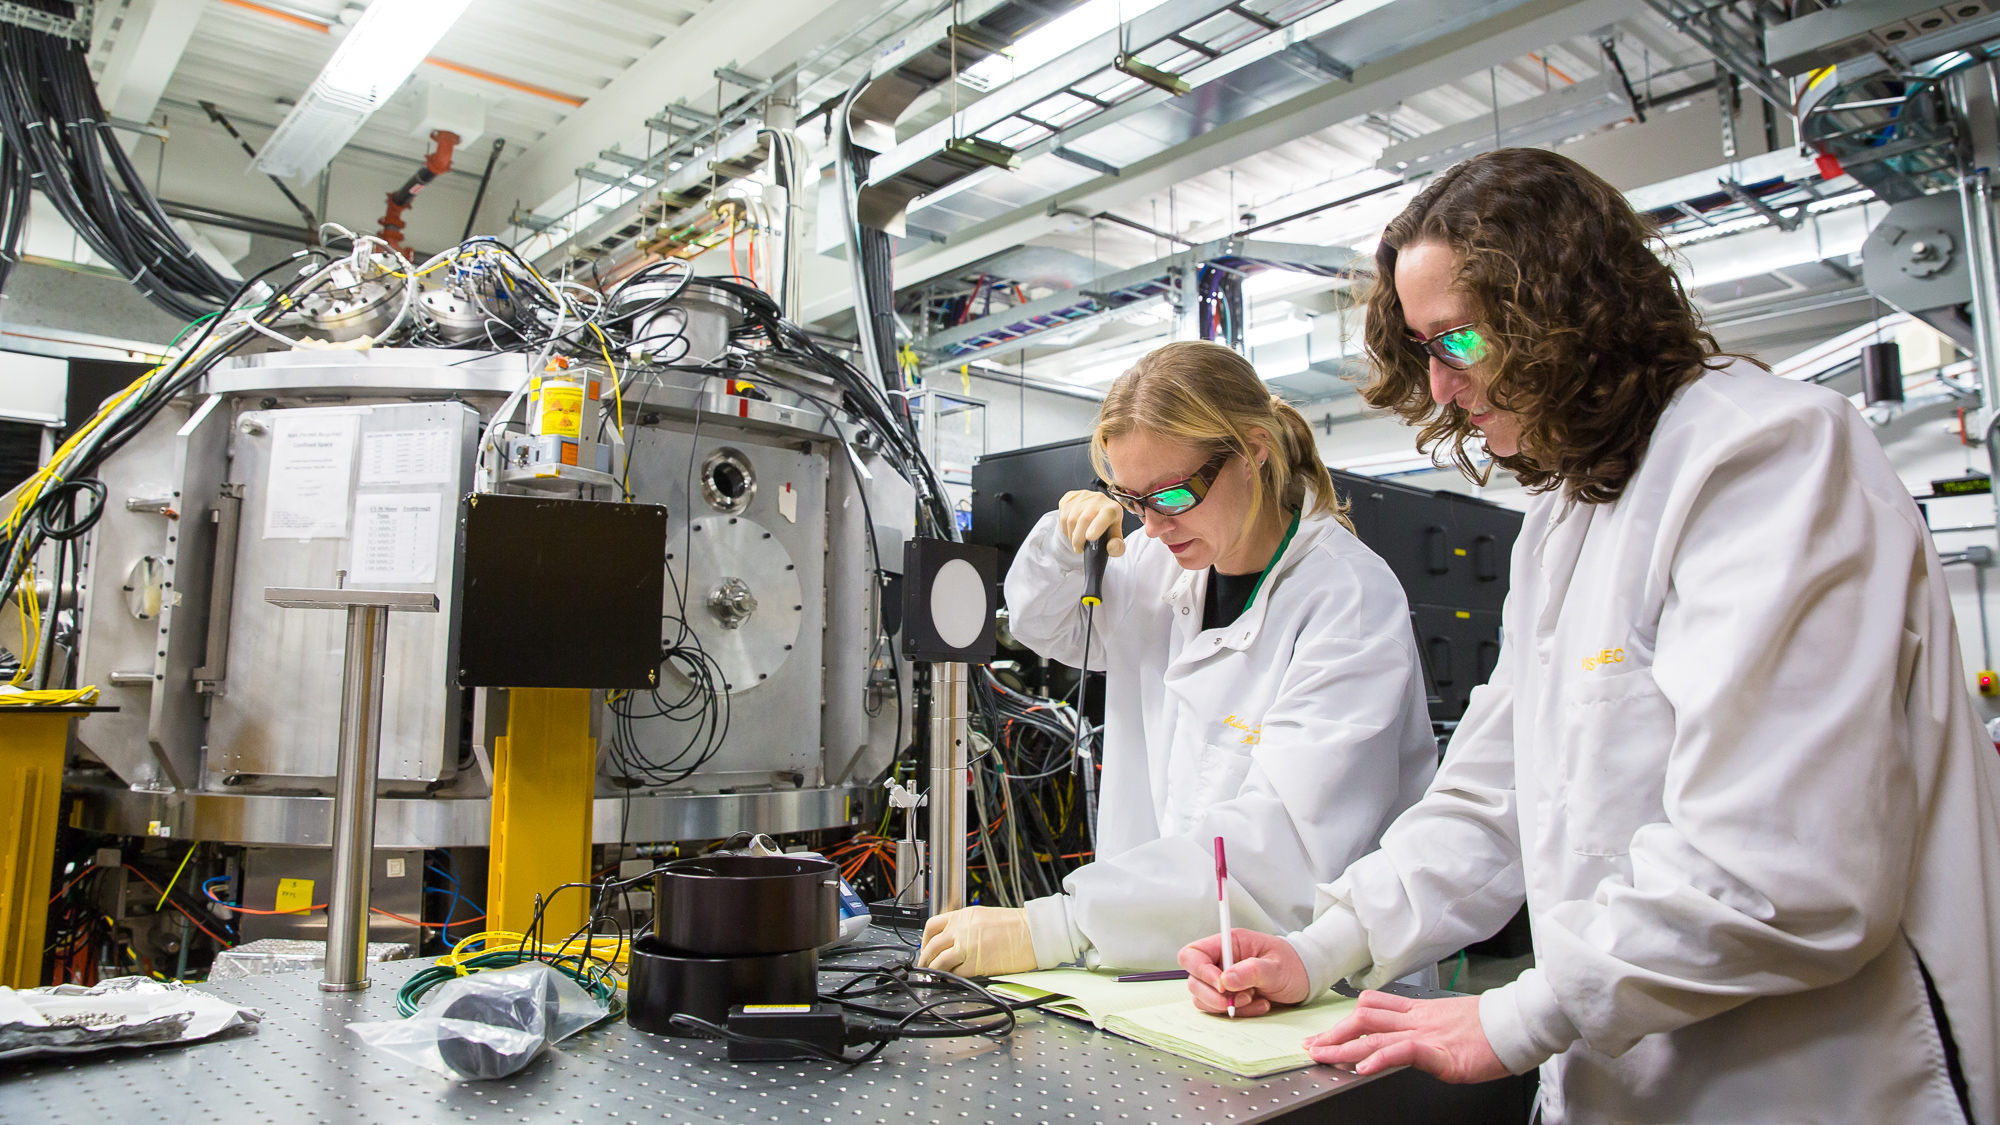 department of energy scientists research and development R&D